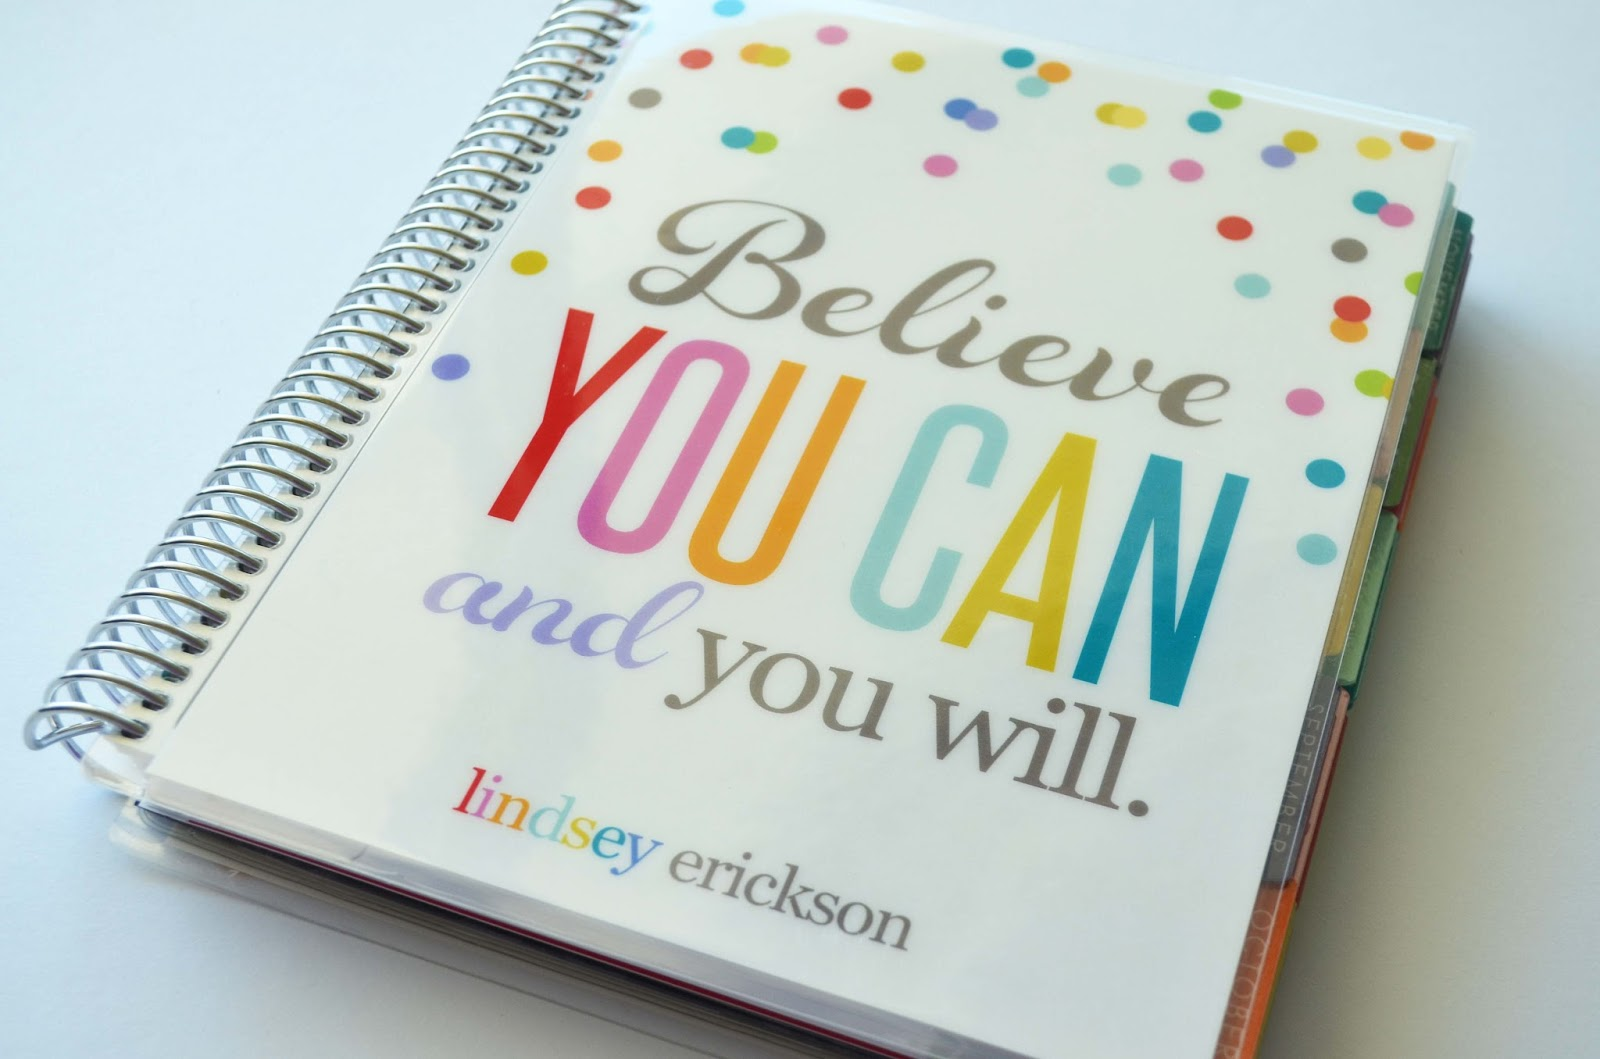 https://www.erincondren.com/life-planner-believe-you-can